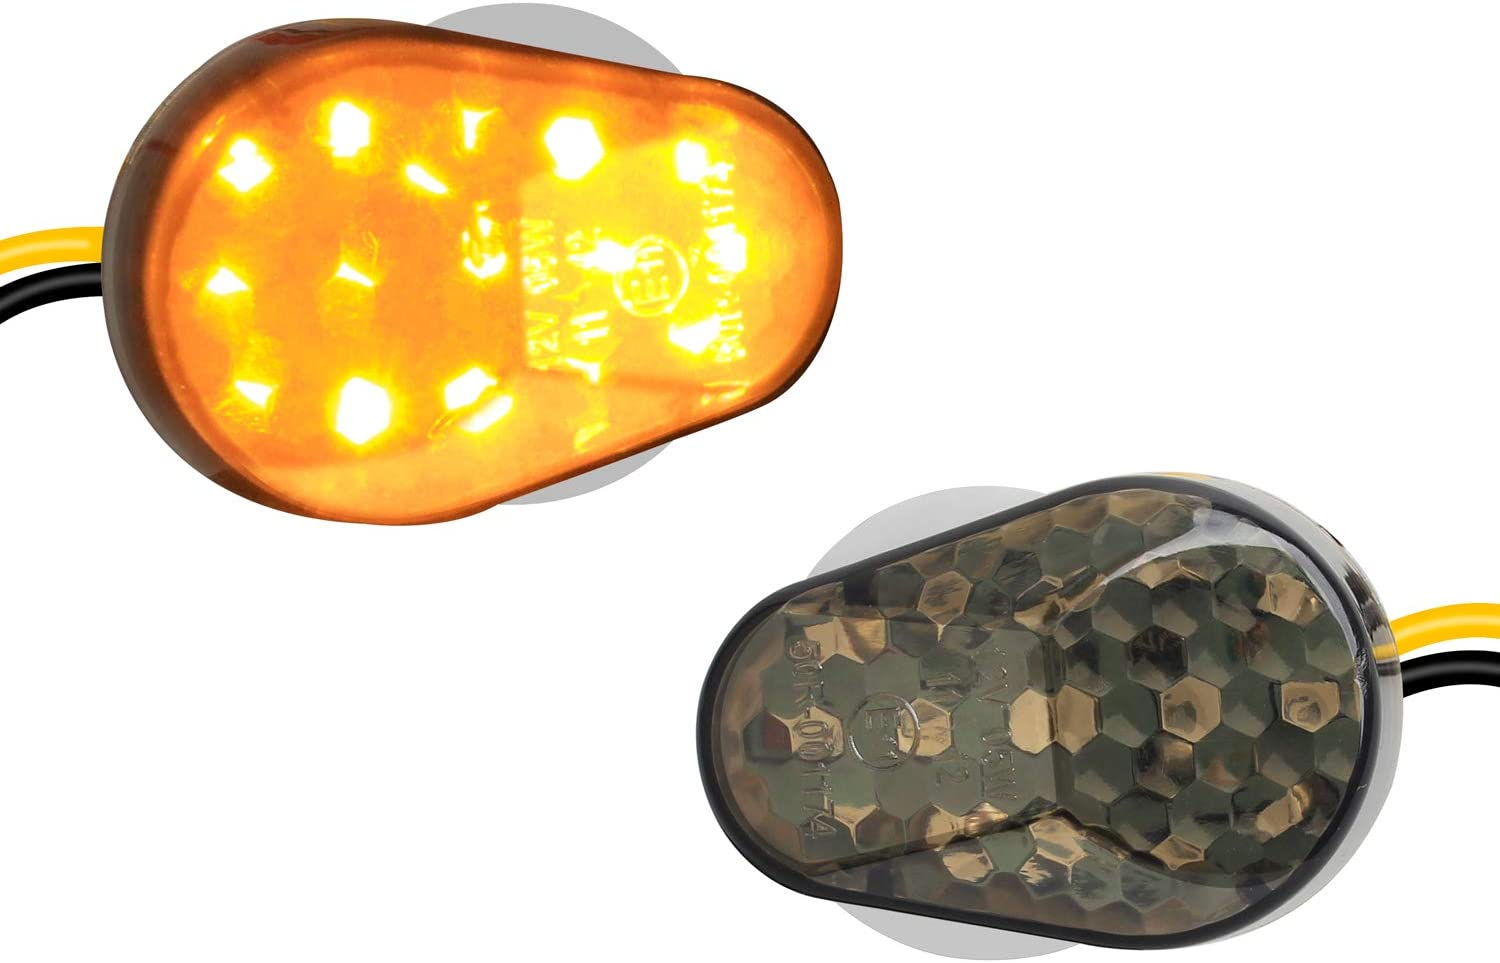 2Pcs Amber Flush Mount LED Turn Signal Lights Compatible with Kawasaki ZX6R, ZX7R, ZX9R, ZX636, ZX12R, ZZR600- Universal 12V Motorcycle Indicators